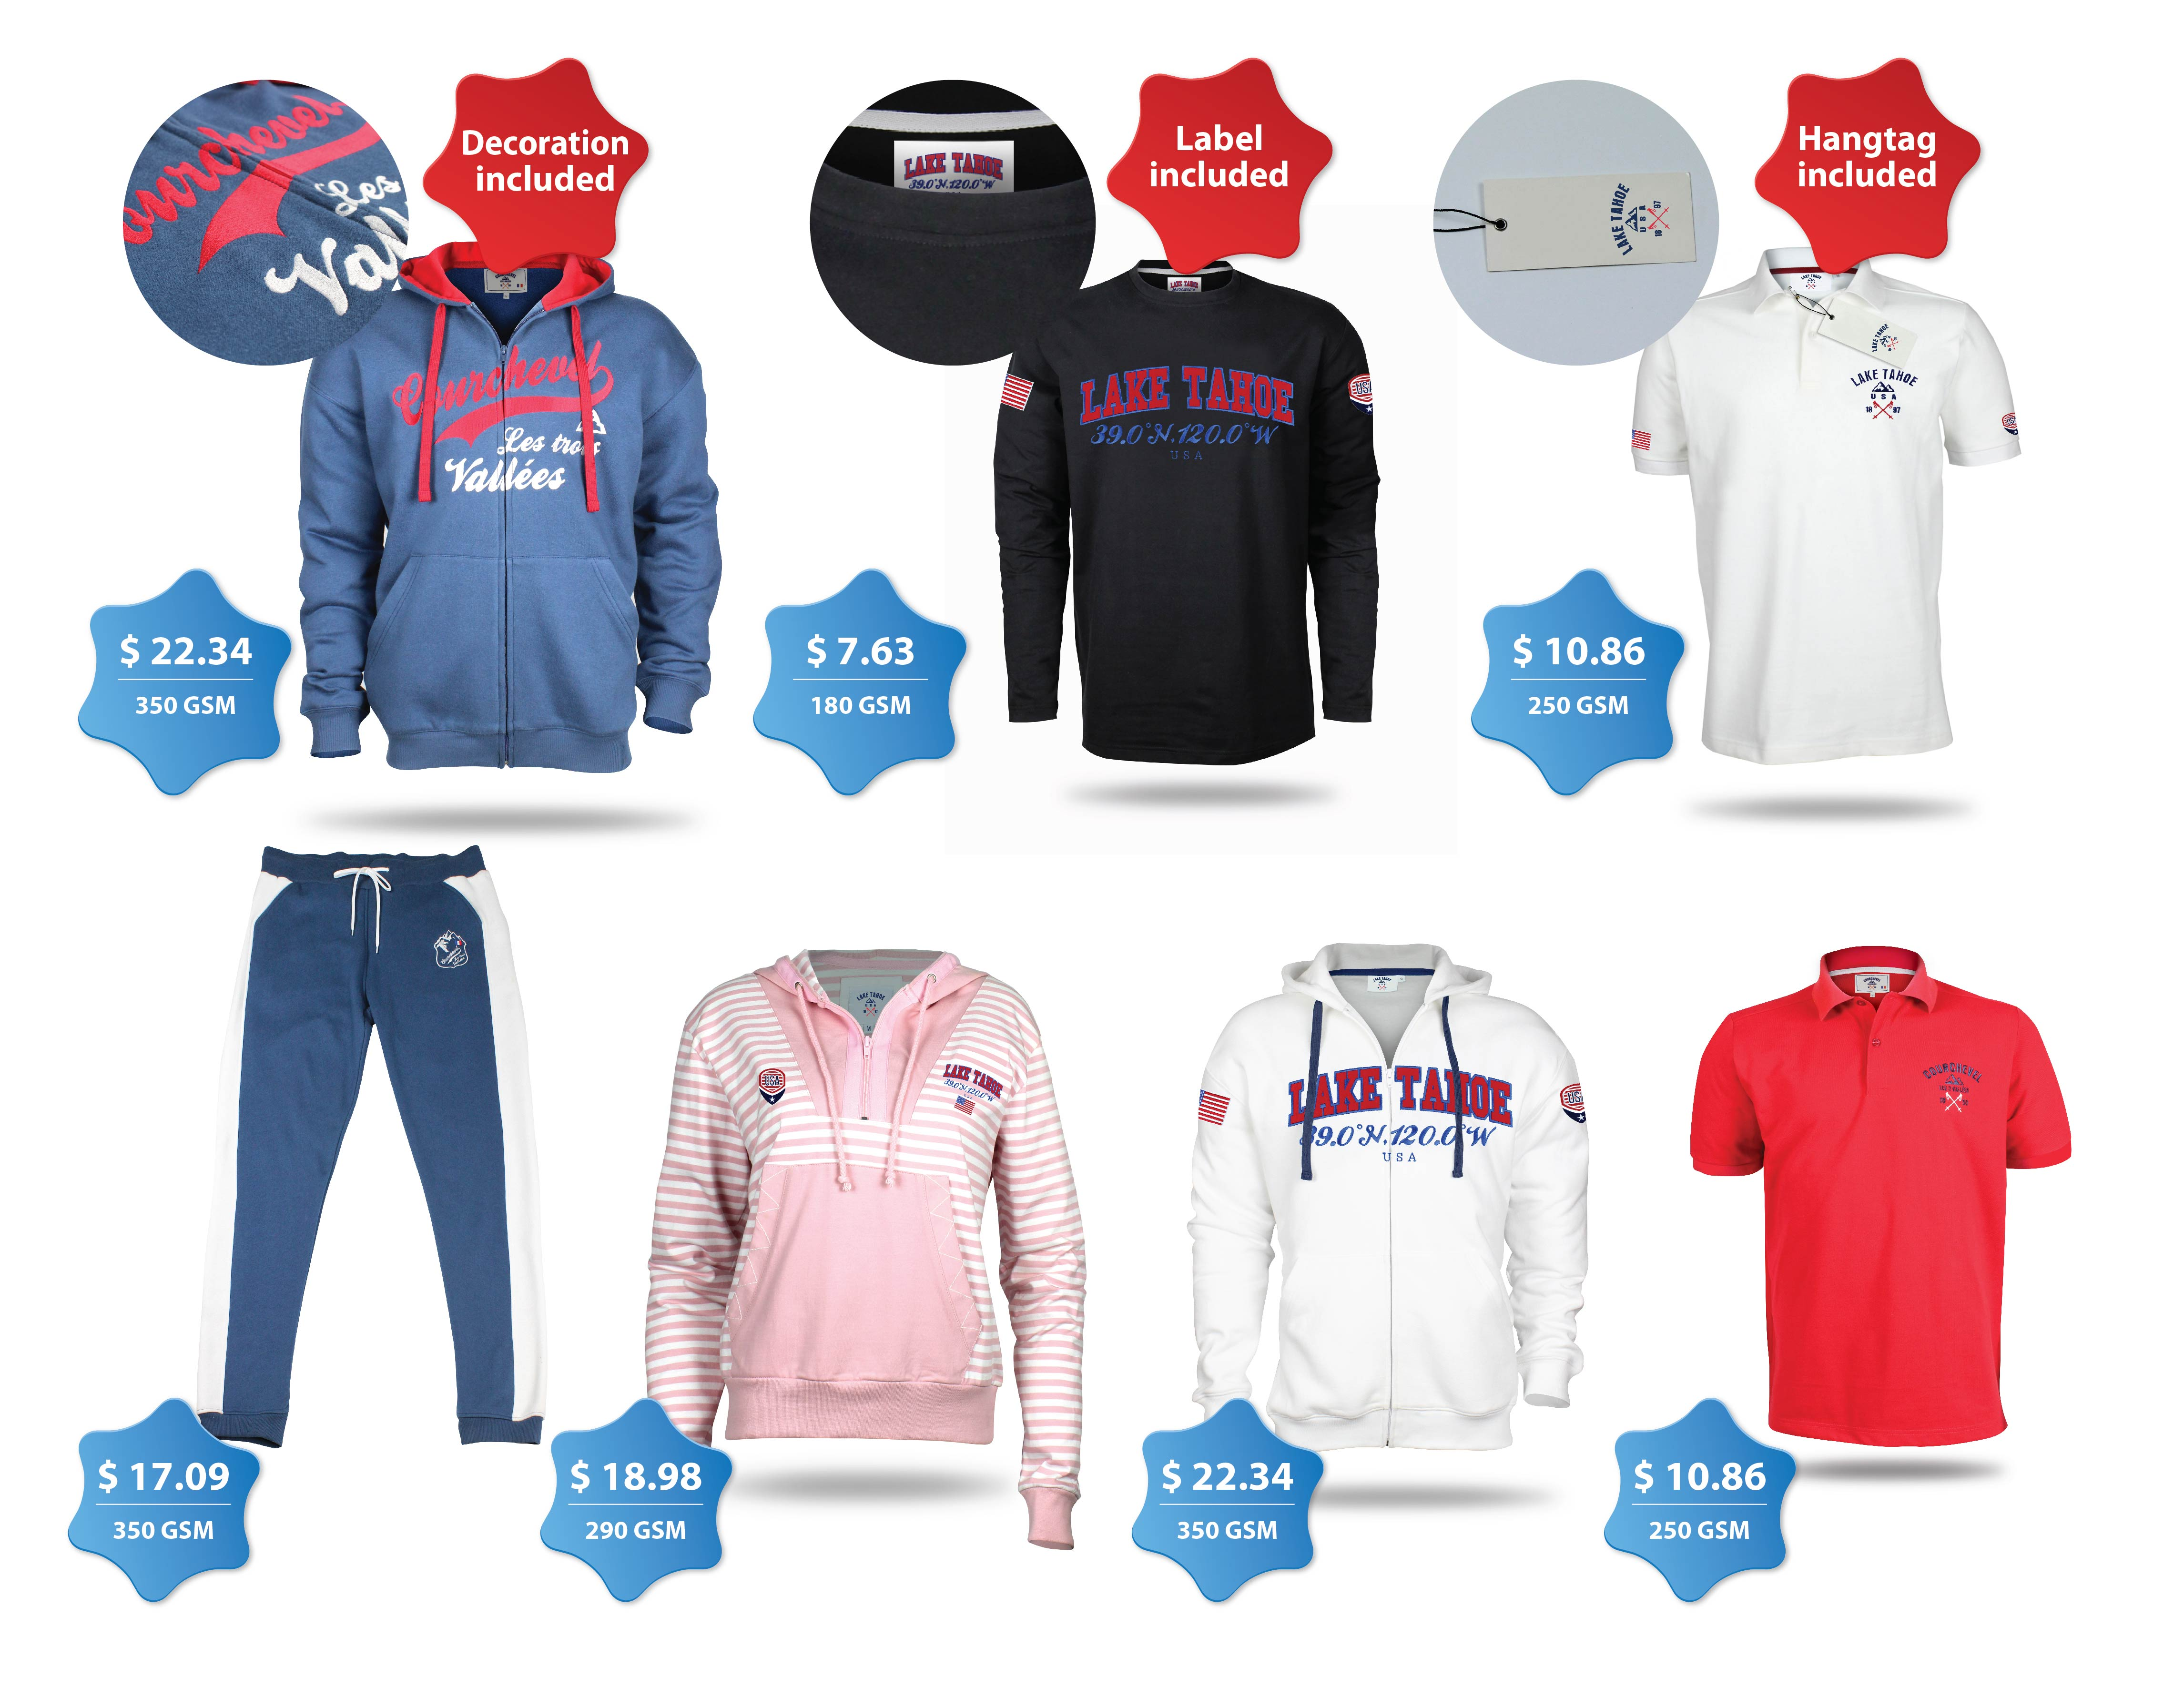 Clothing Examples of Ski Resort Merchandise for the US